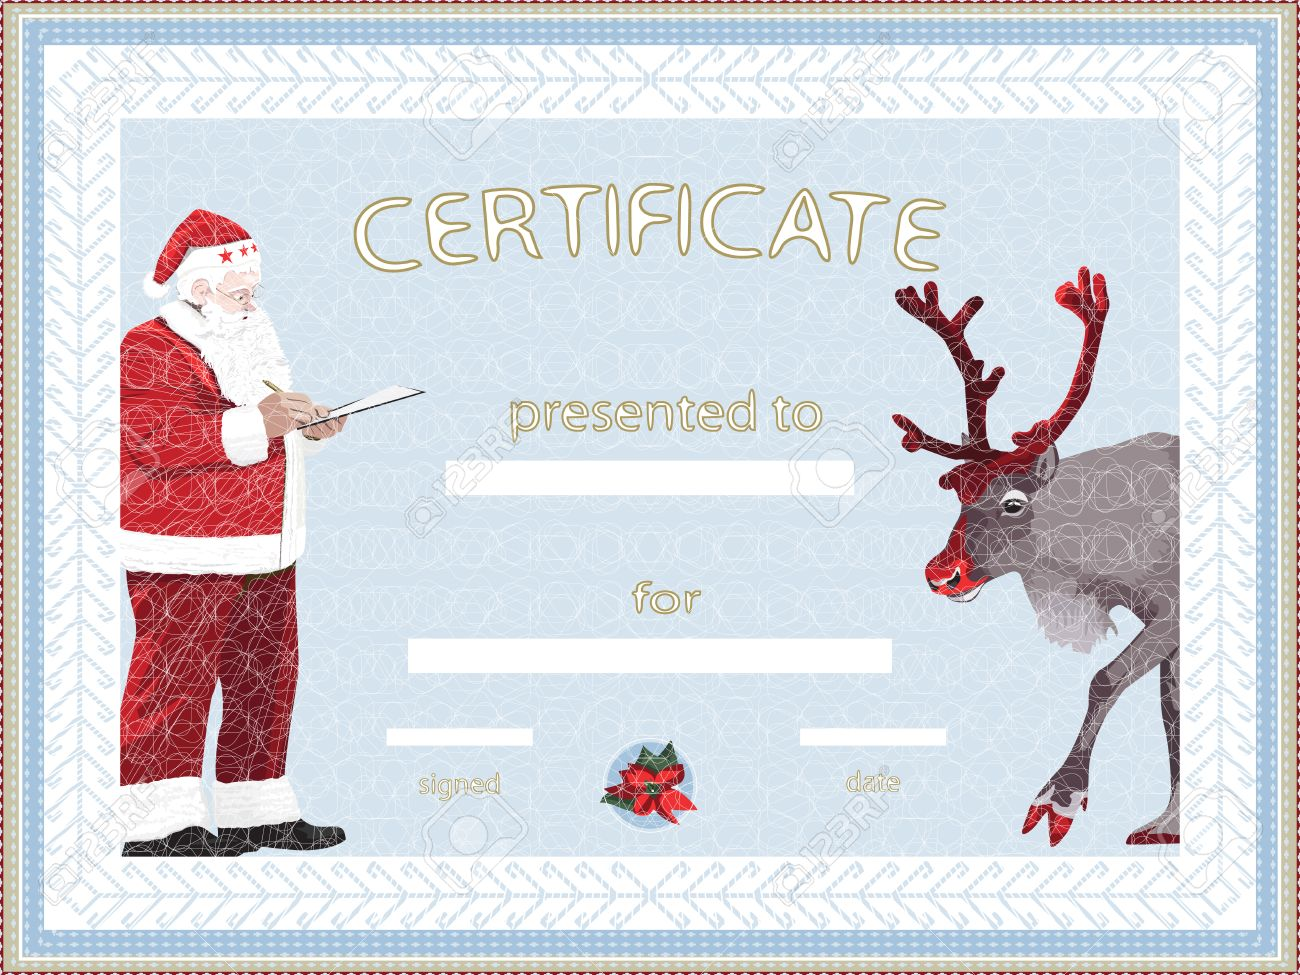 certificate provided by santa claus royalty cliparts vectors certificate provided by santa claus stock vector 23020530